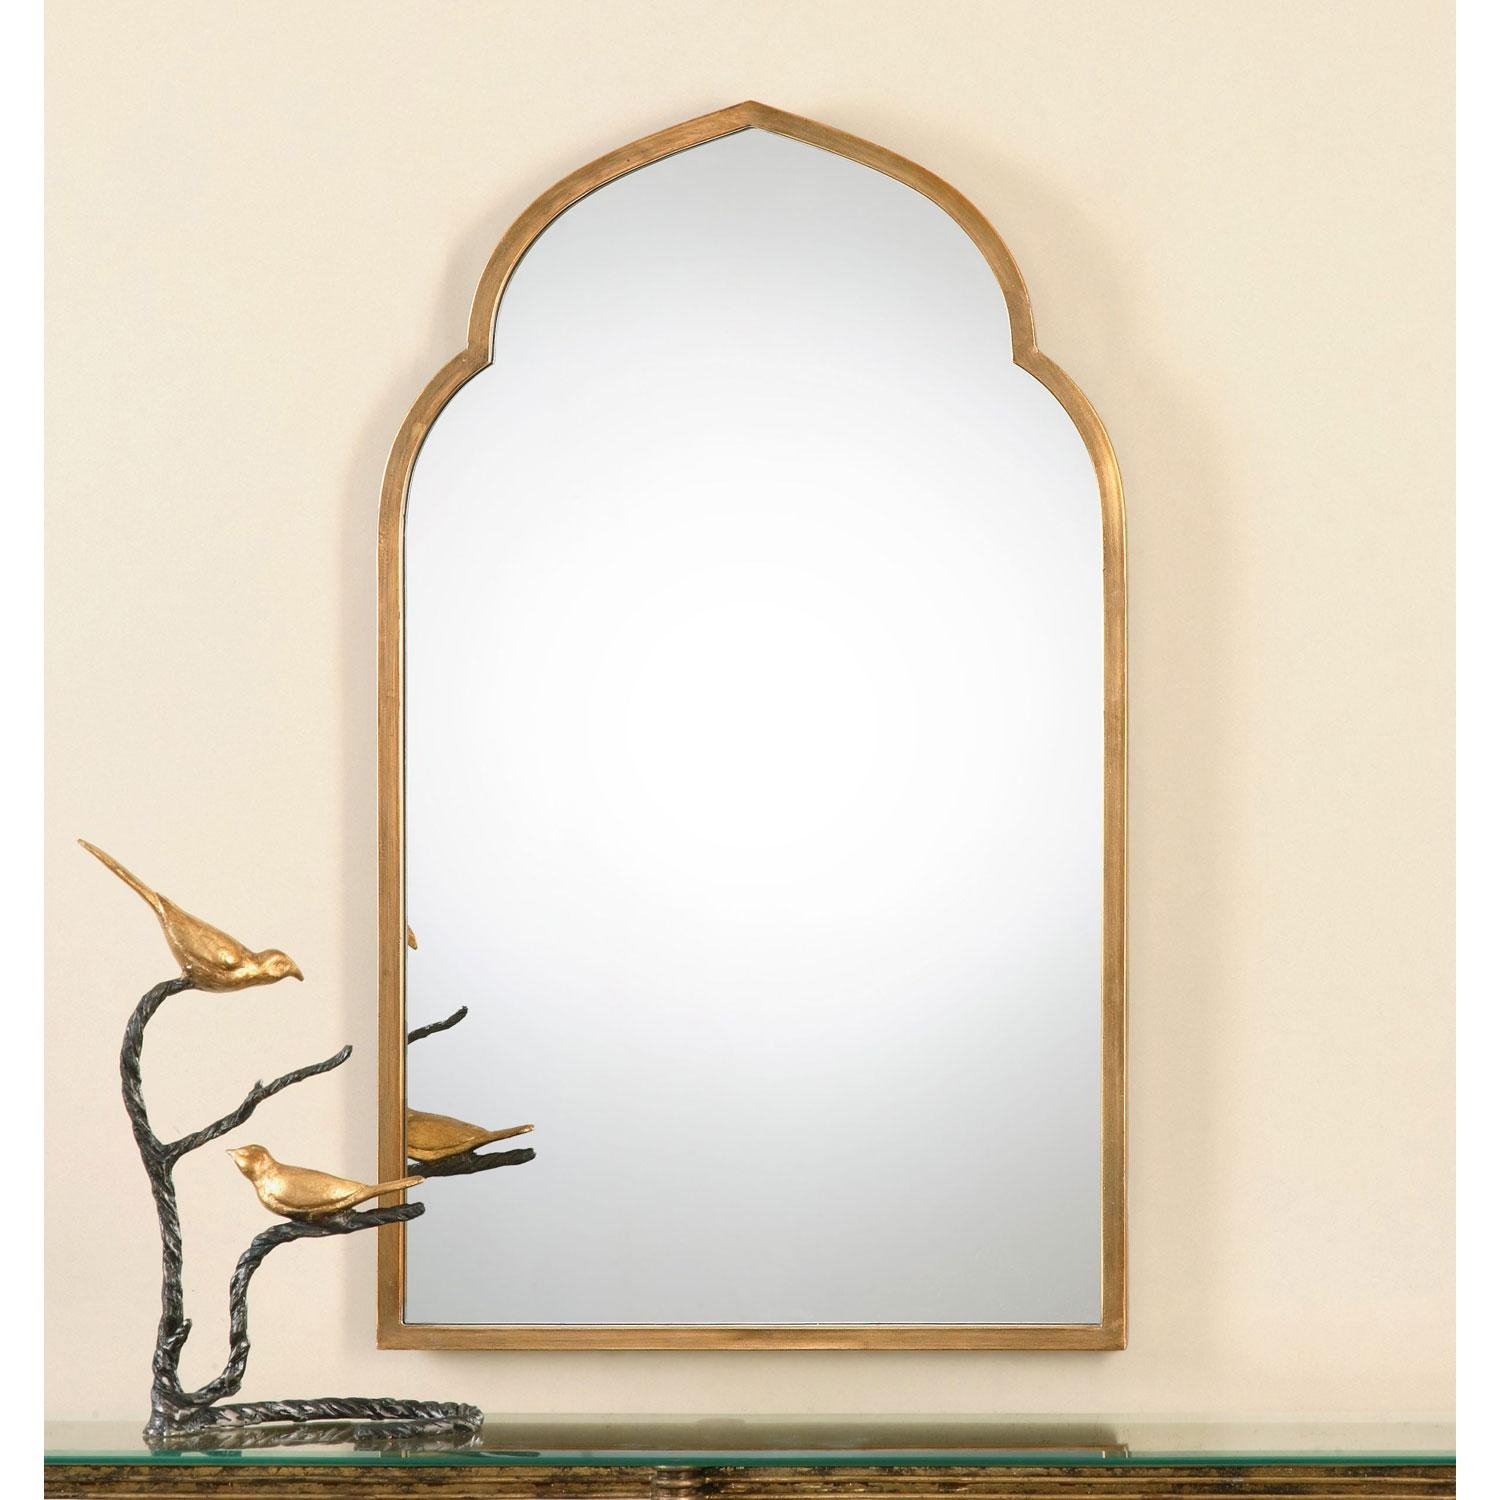 Kenitra Gold Arch Mirror Uttermost Wall Mirror Mirrors Home Decor Within Gold Arch Mirror (View 2 of 20)